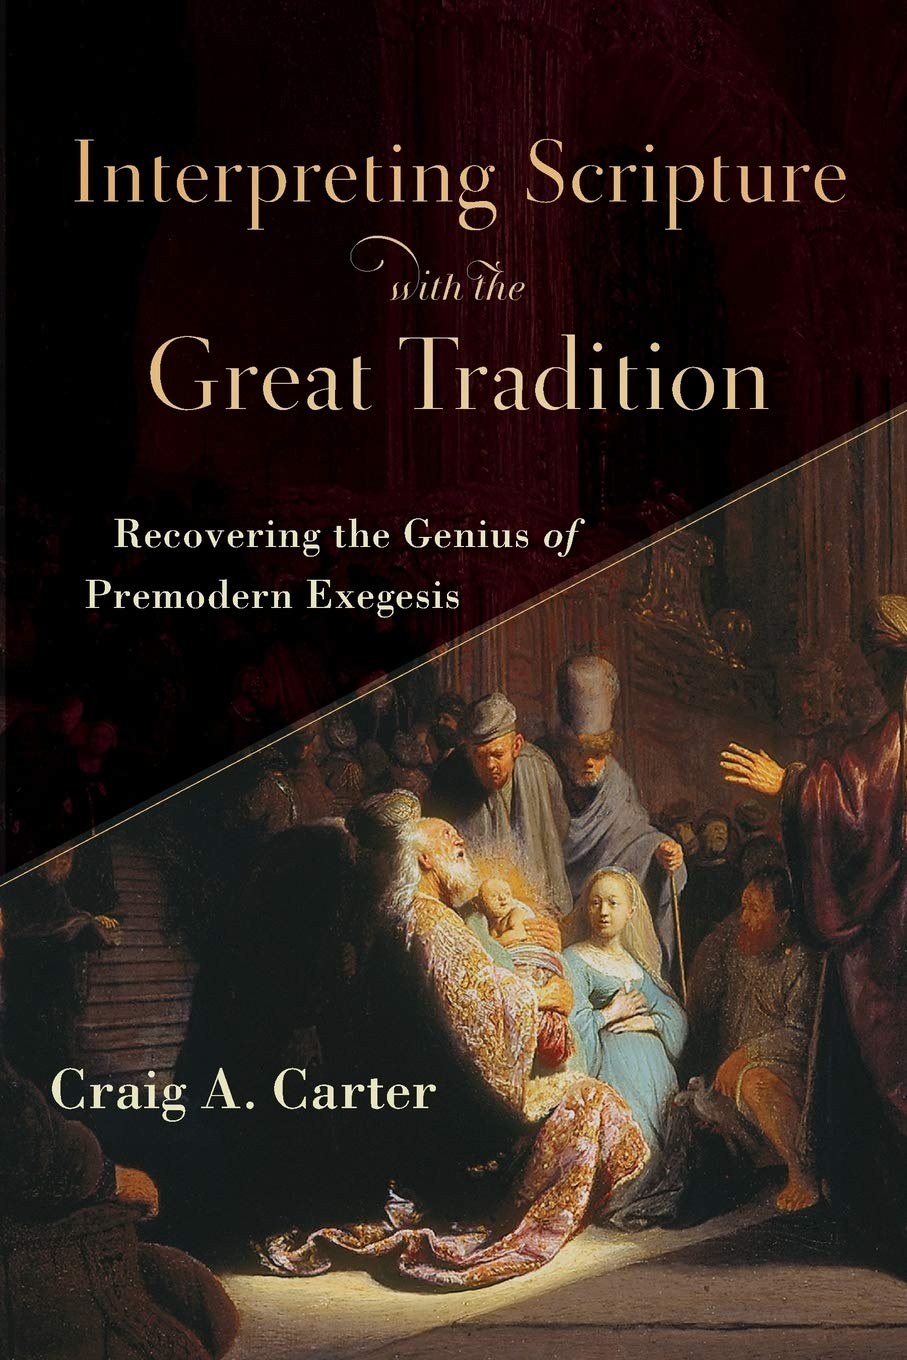 Interpreting Scripture with the Great Tradition: Recovering the Genius of  Premodern Exegesis: Carter, Craig A.: 9780801098727: Amazon.com: Books